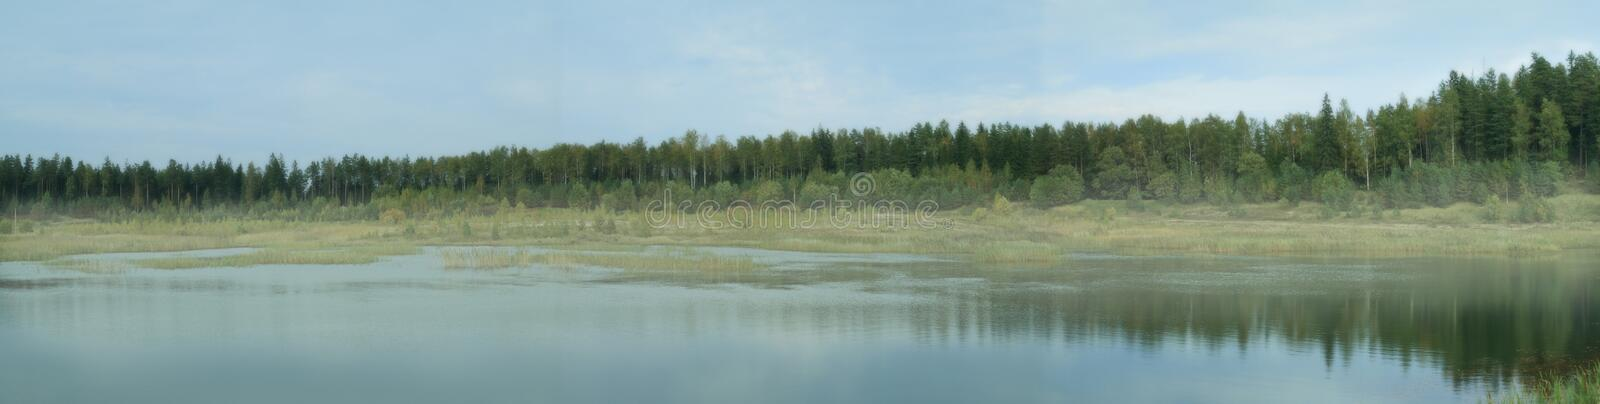 Forest panorama royalty free stock image